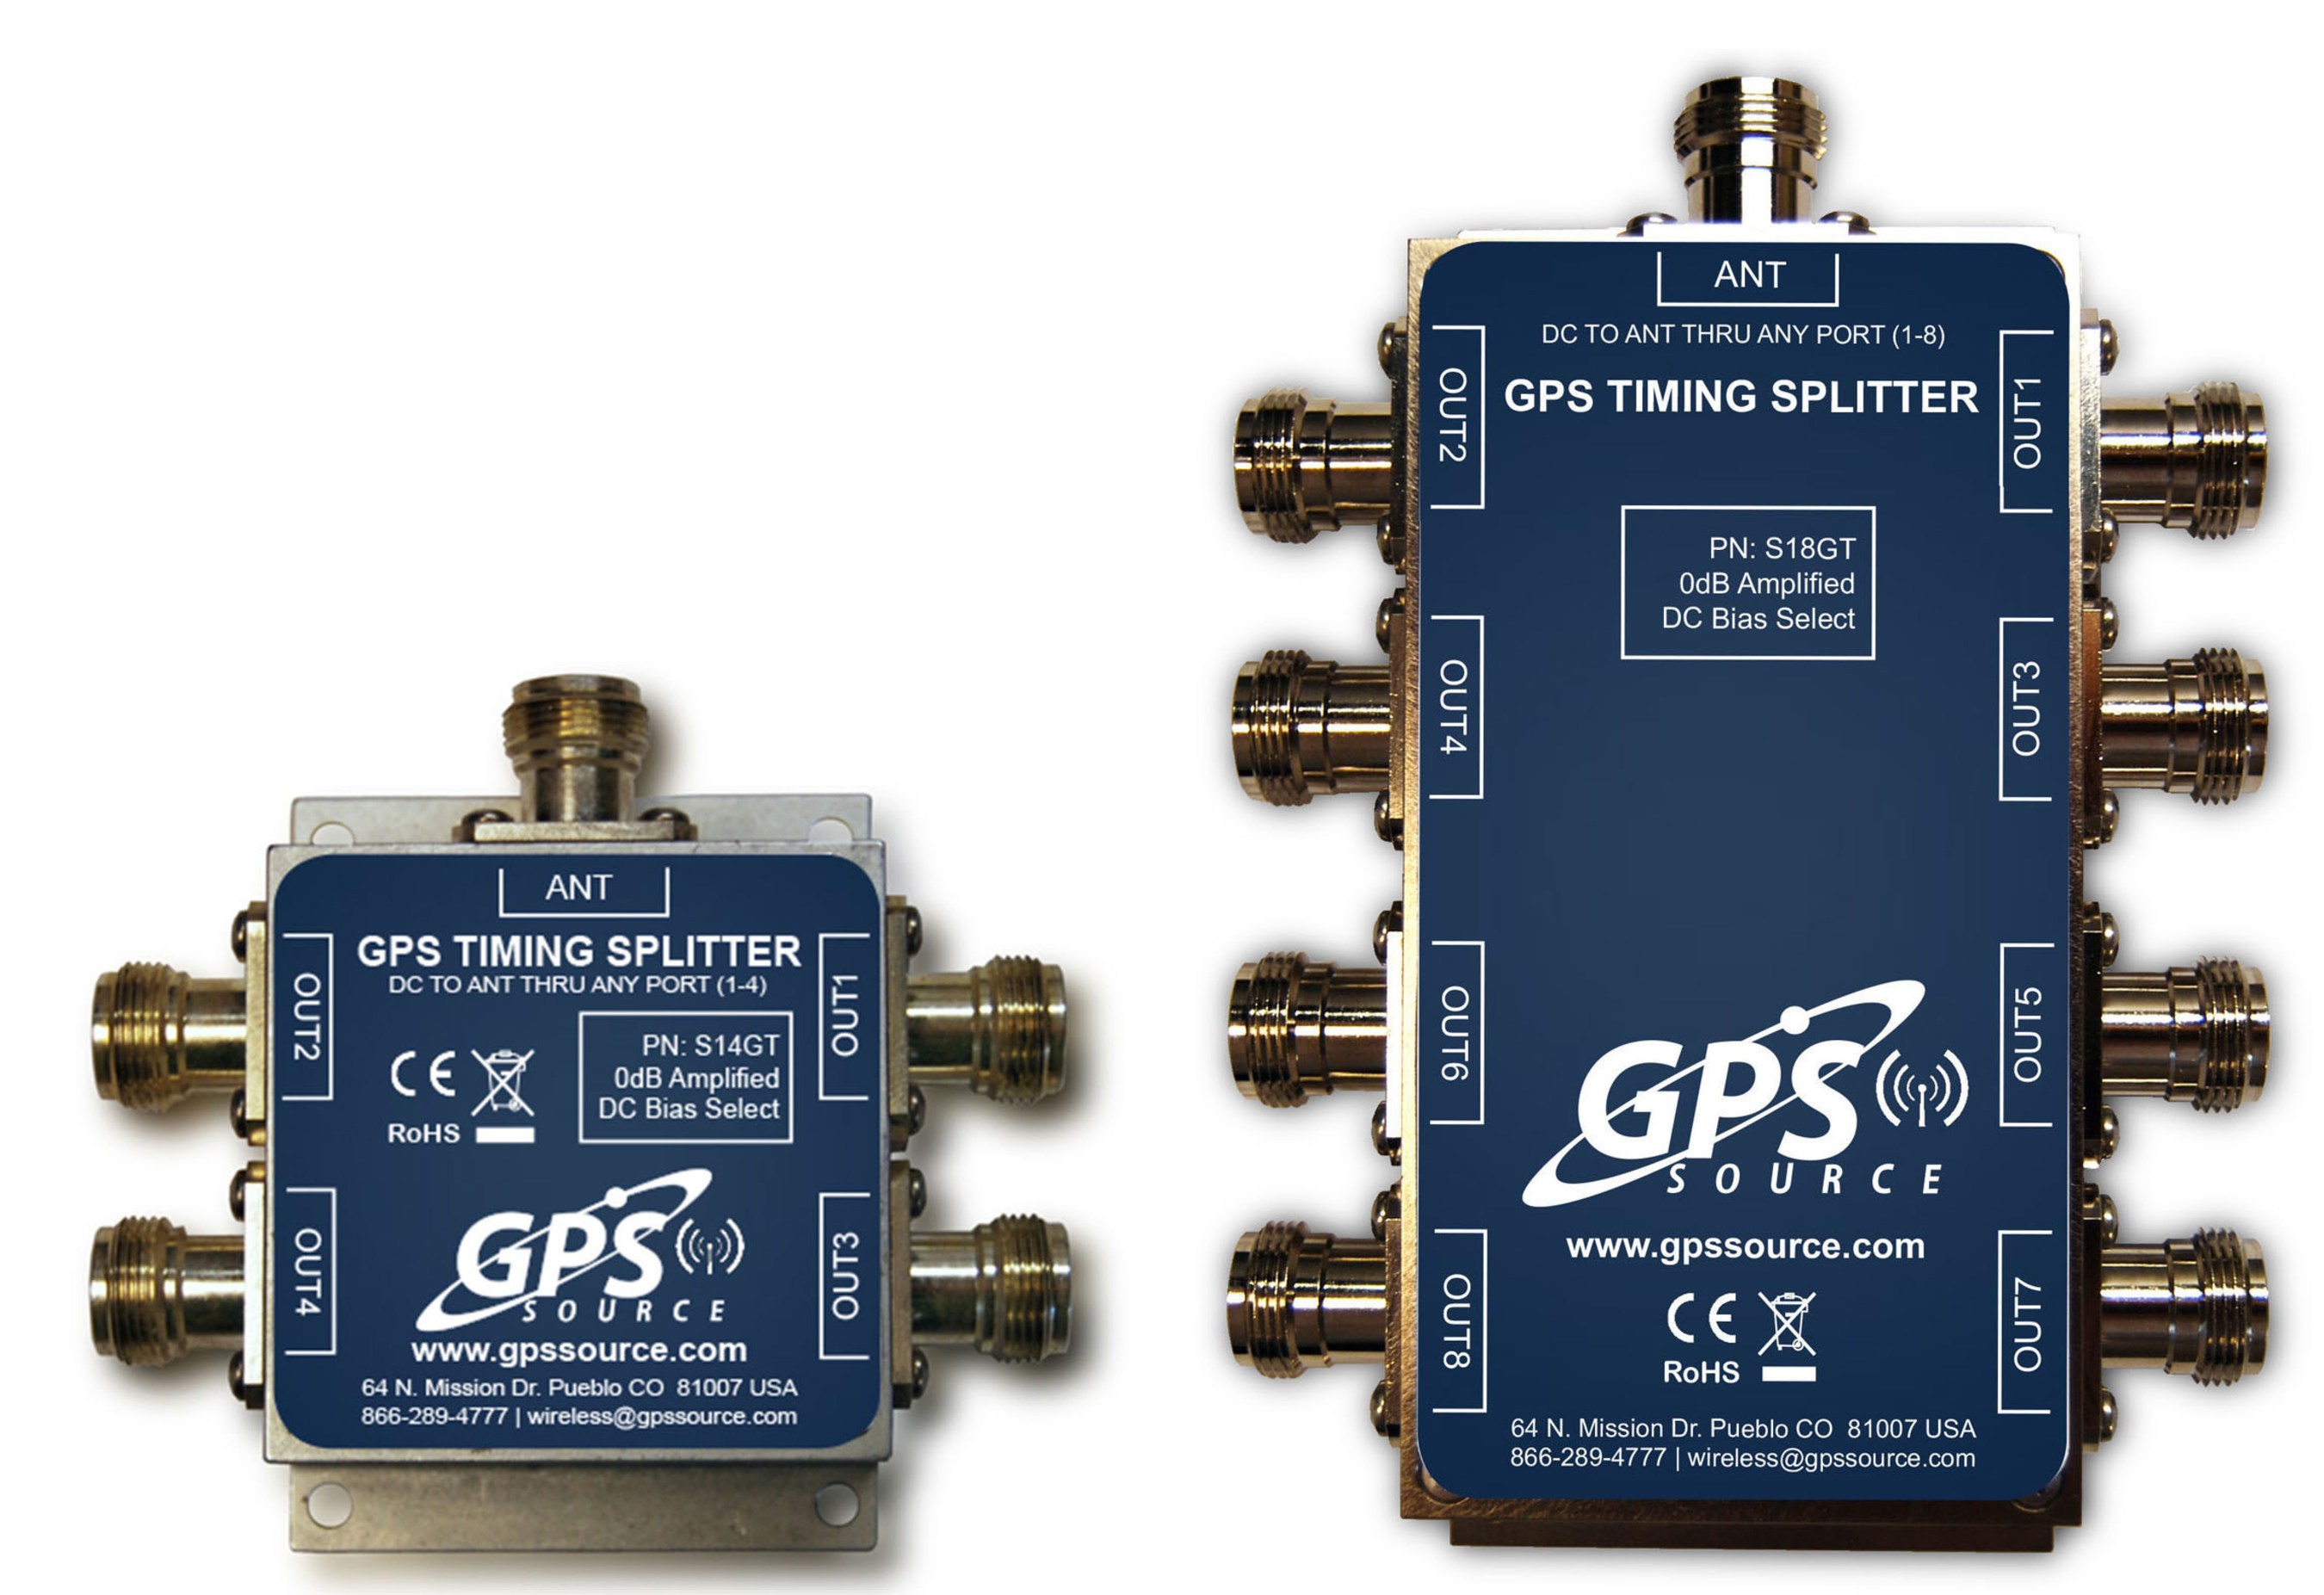 GPS Source, Inc. Is Pleased to Announce the Release of a New Line of GPS Splitters Created for the Small Cell Wireless and Distributed Antenna System (DAS) Markets